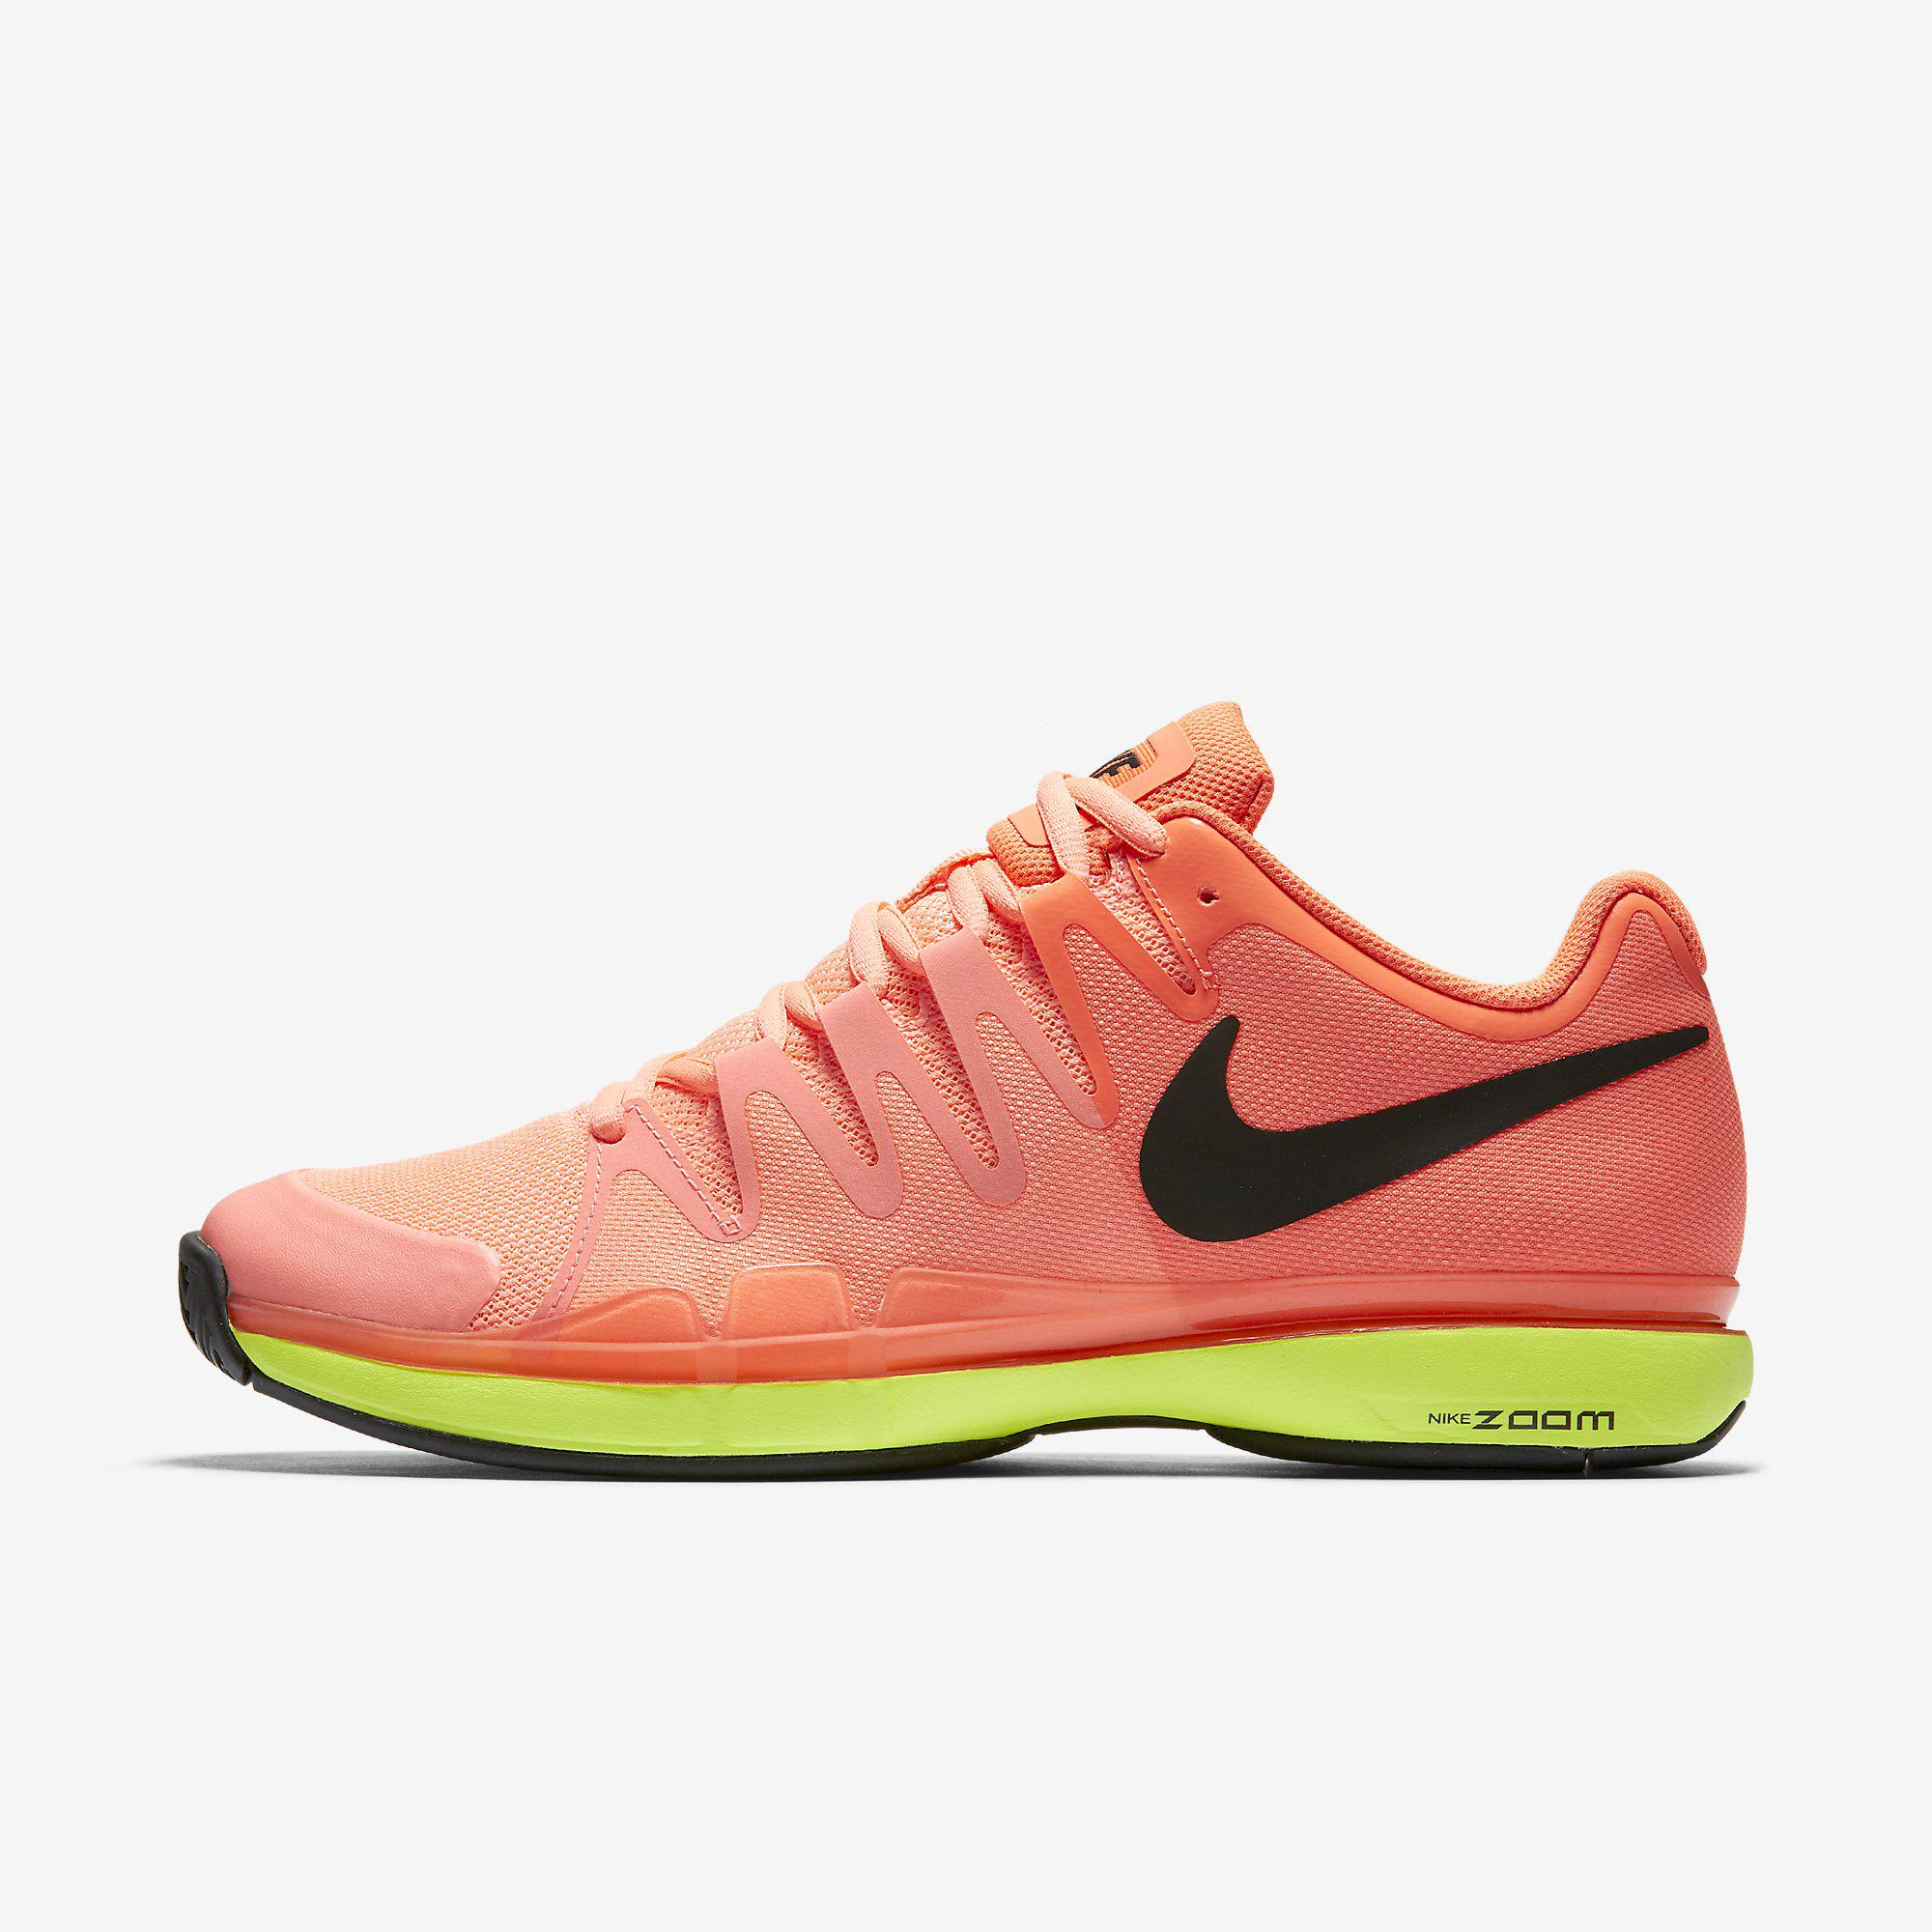 info for 65042 2383b Nike Mens Zoom Vapor 9.5 Tour Tennis Shoes - Lava Glow Hyper Orange -  Tennisnuts.com